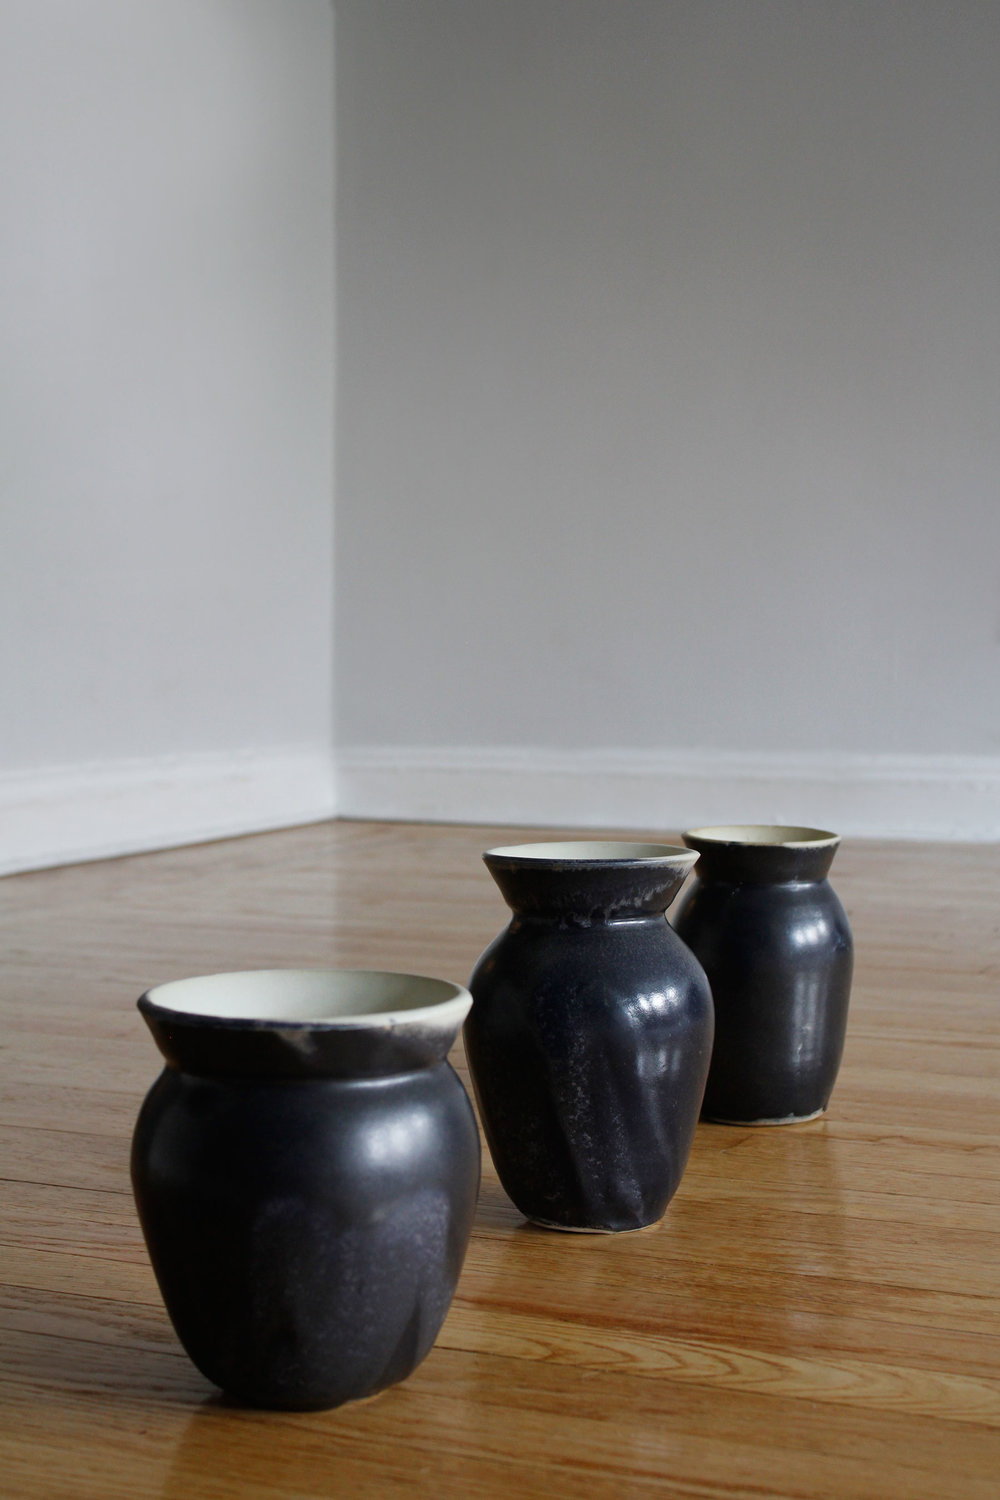 James-Rivas_Decay-Vase-Series_A.jpg